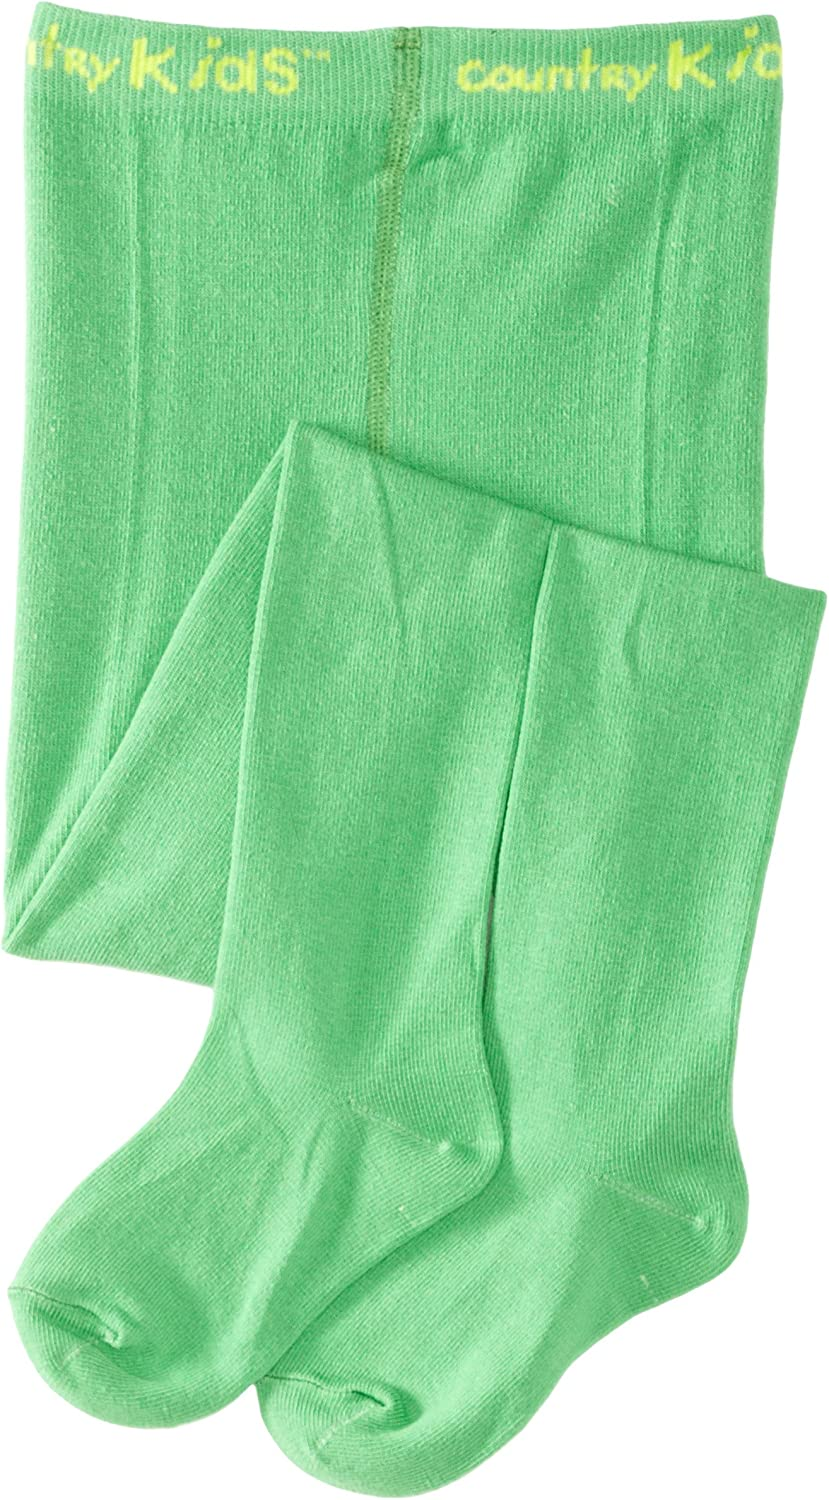 Country Kids Tights - Apple Green